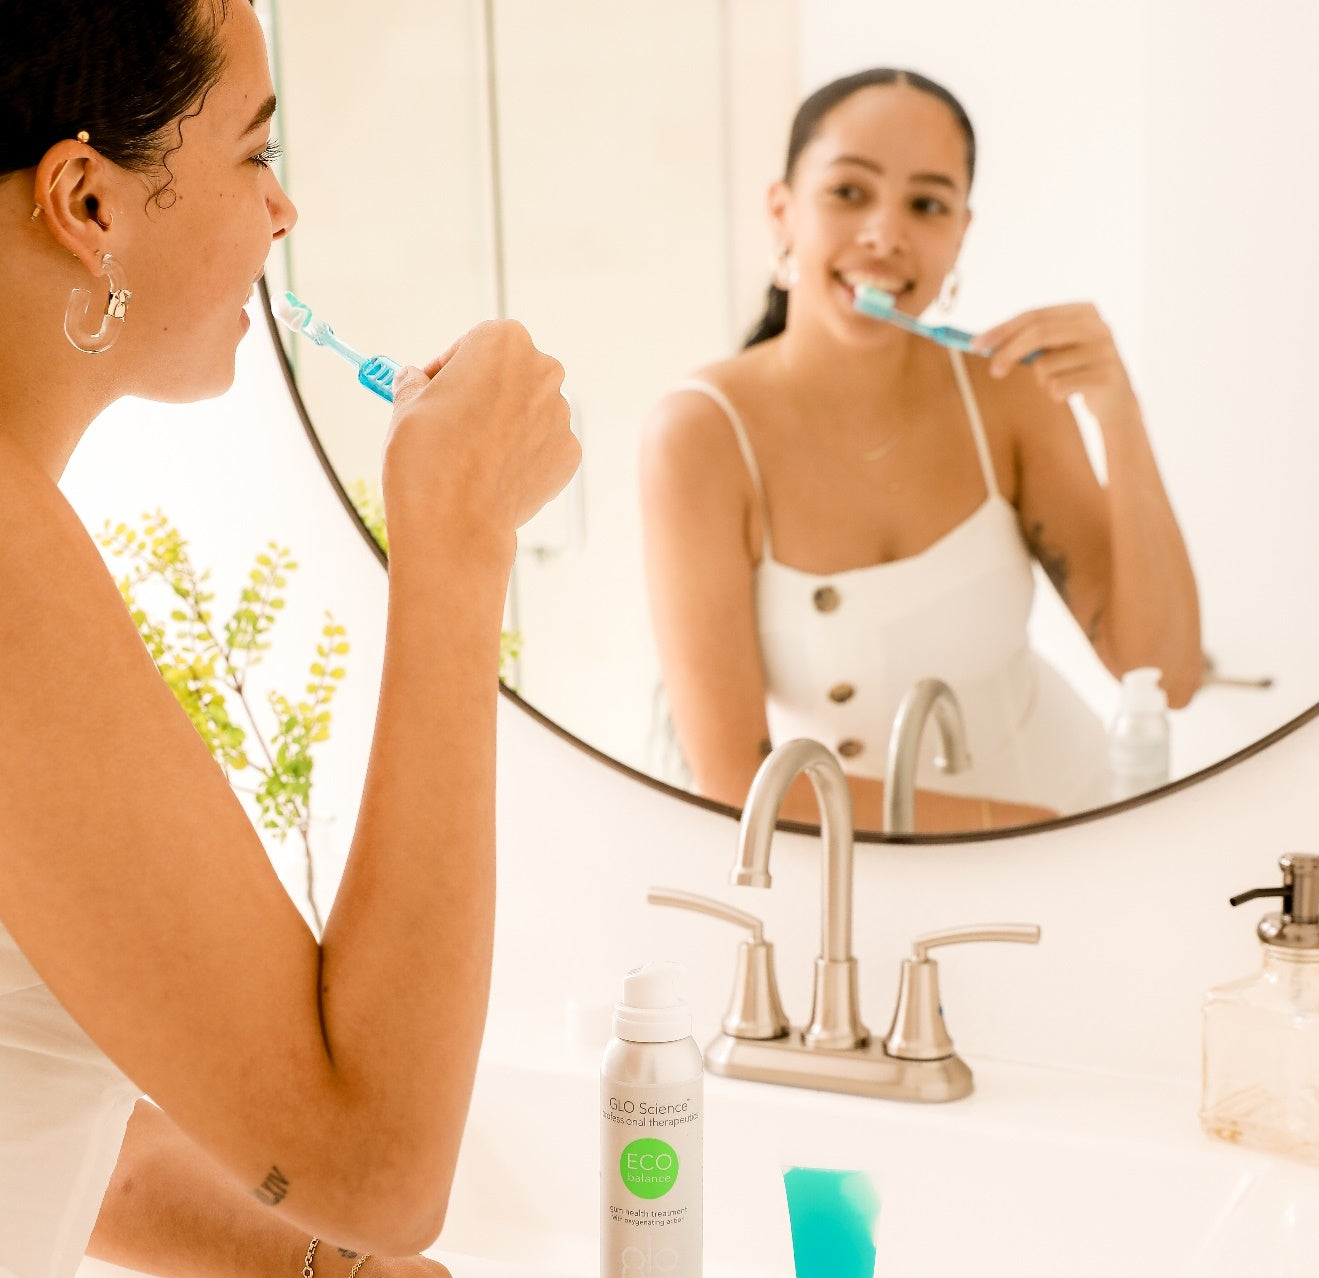 Smiling woman brushing her teeth in front of a bathroom mirror and a GLO Science product bottle.